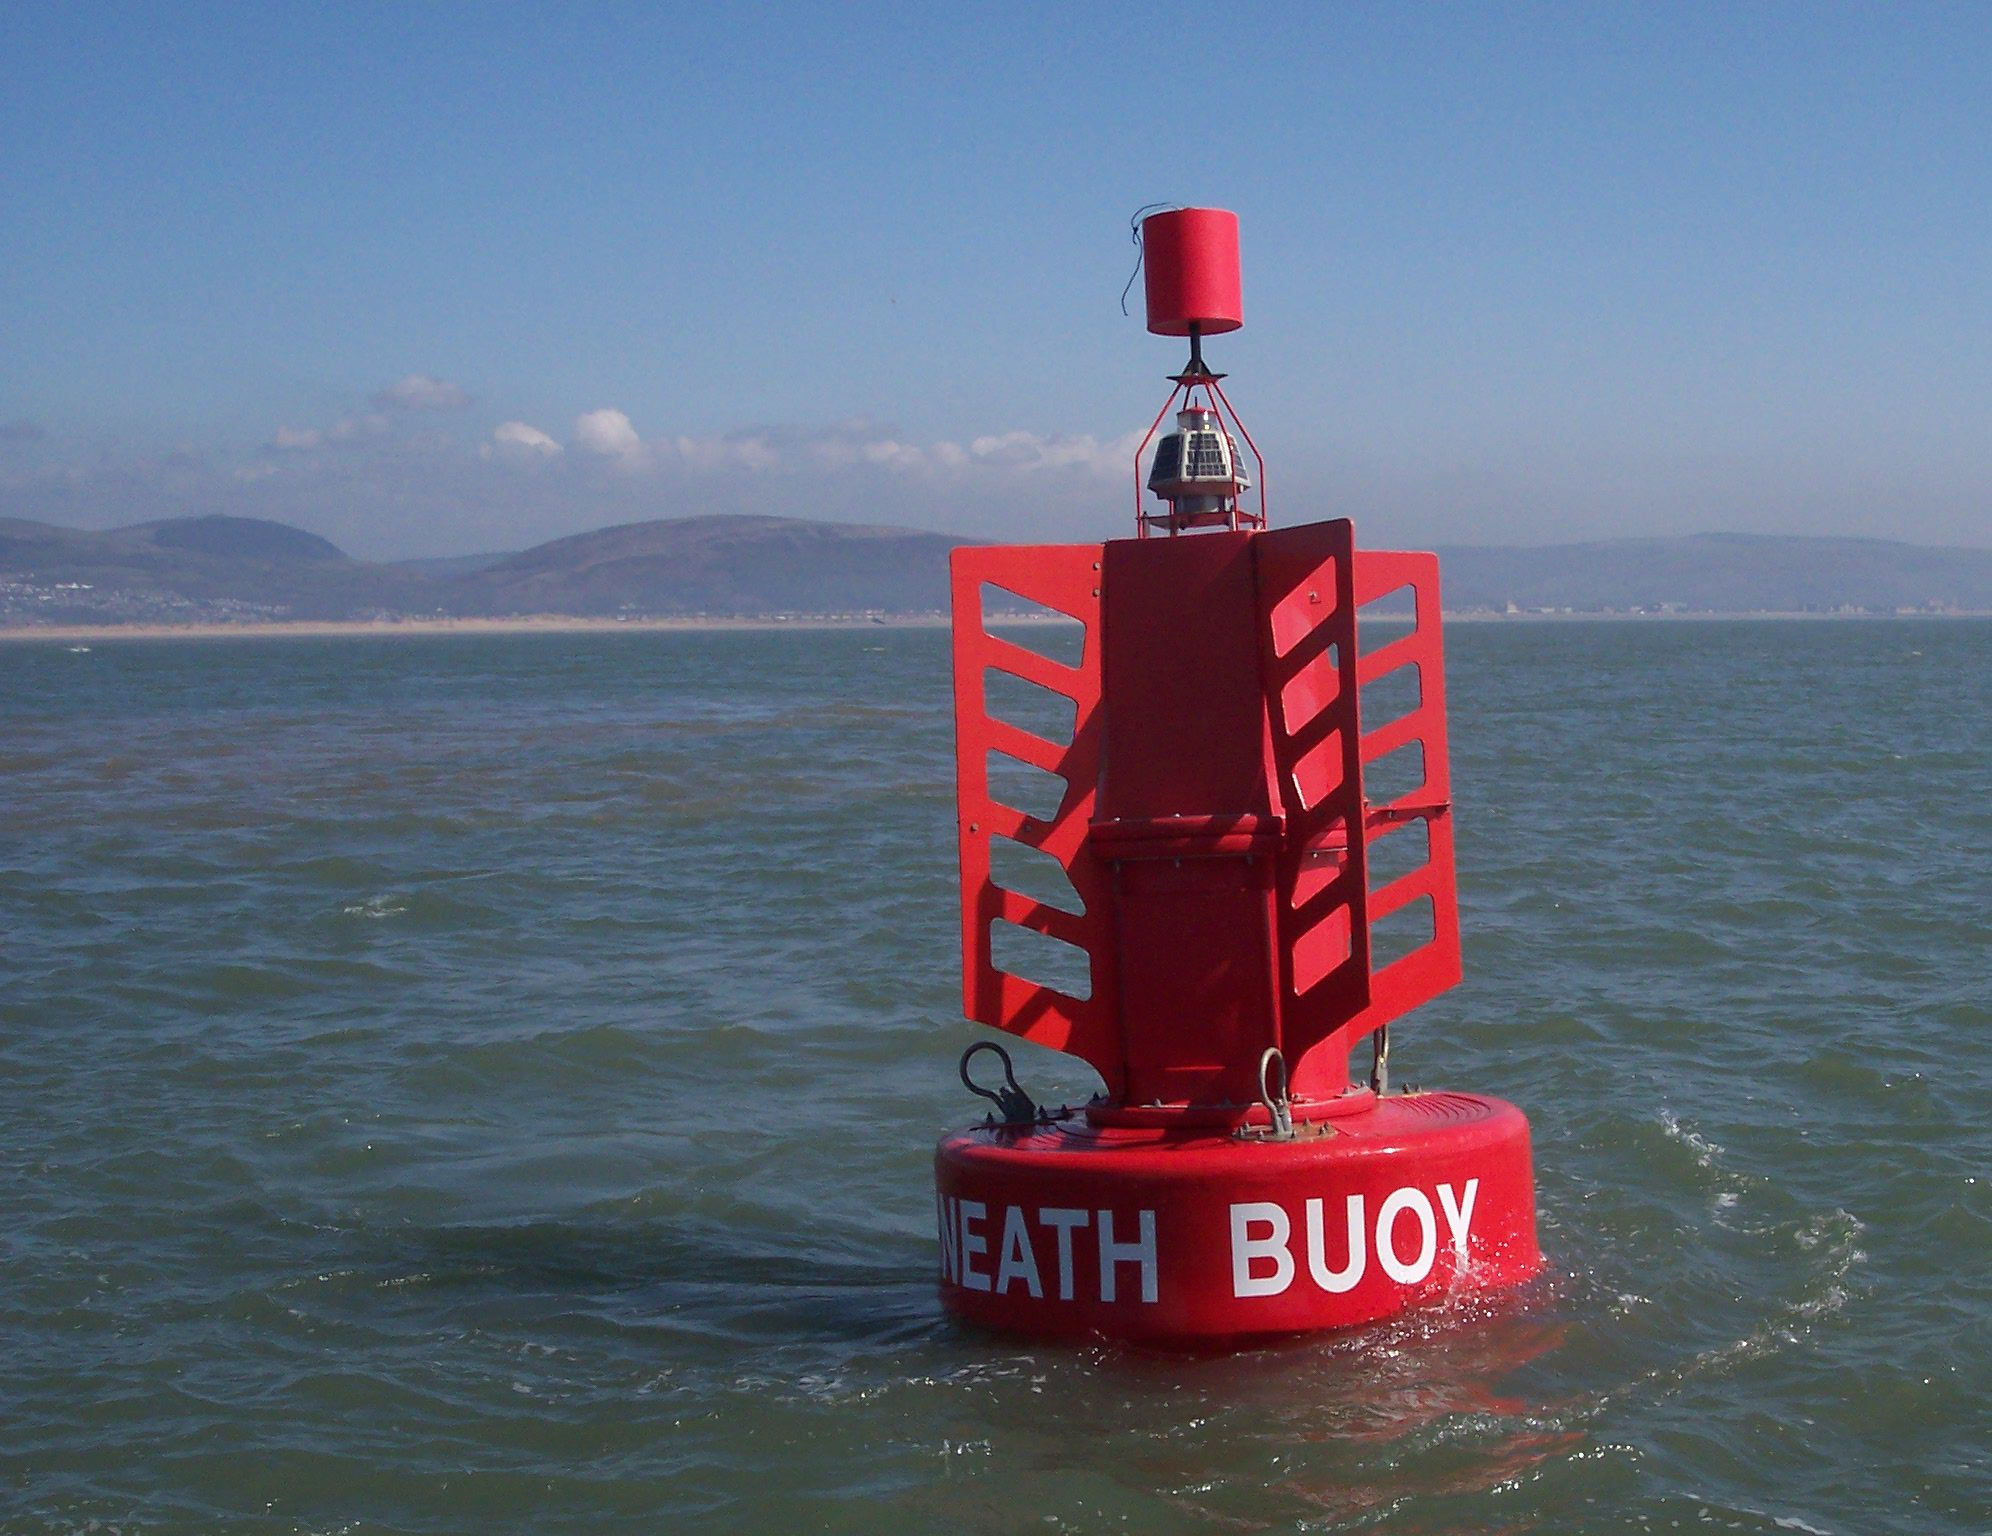 Buoy marking the channel into the Port of Neath | BUOYAGE SYSTEM ...